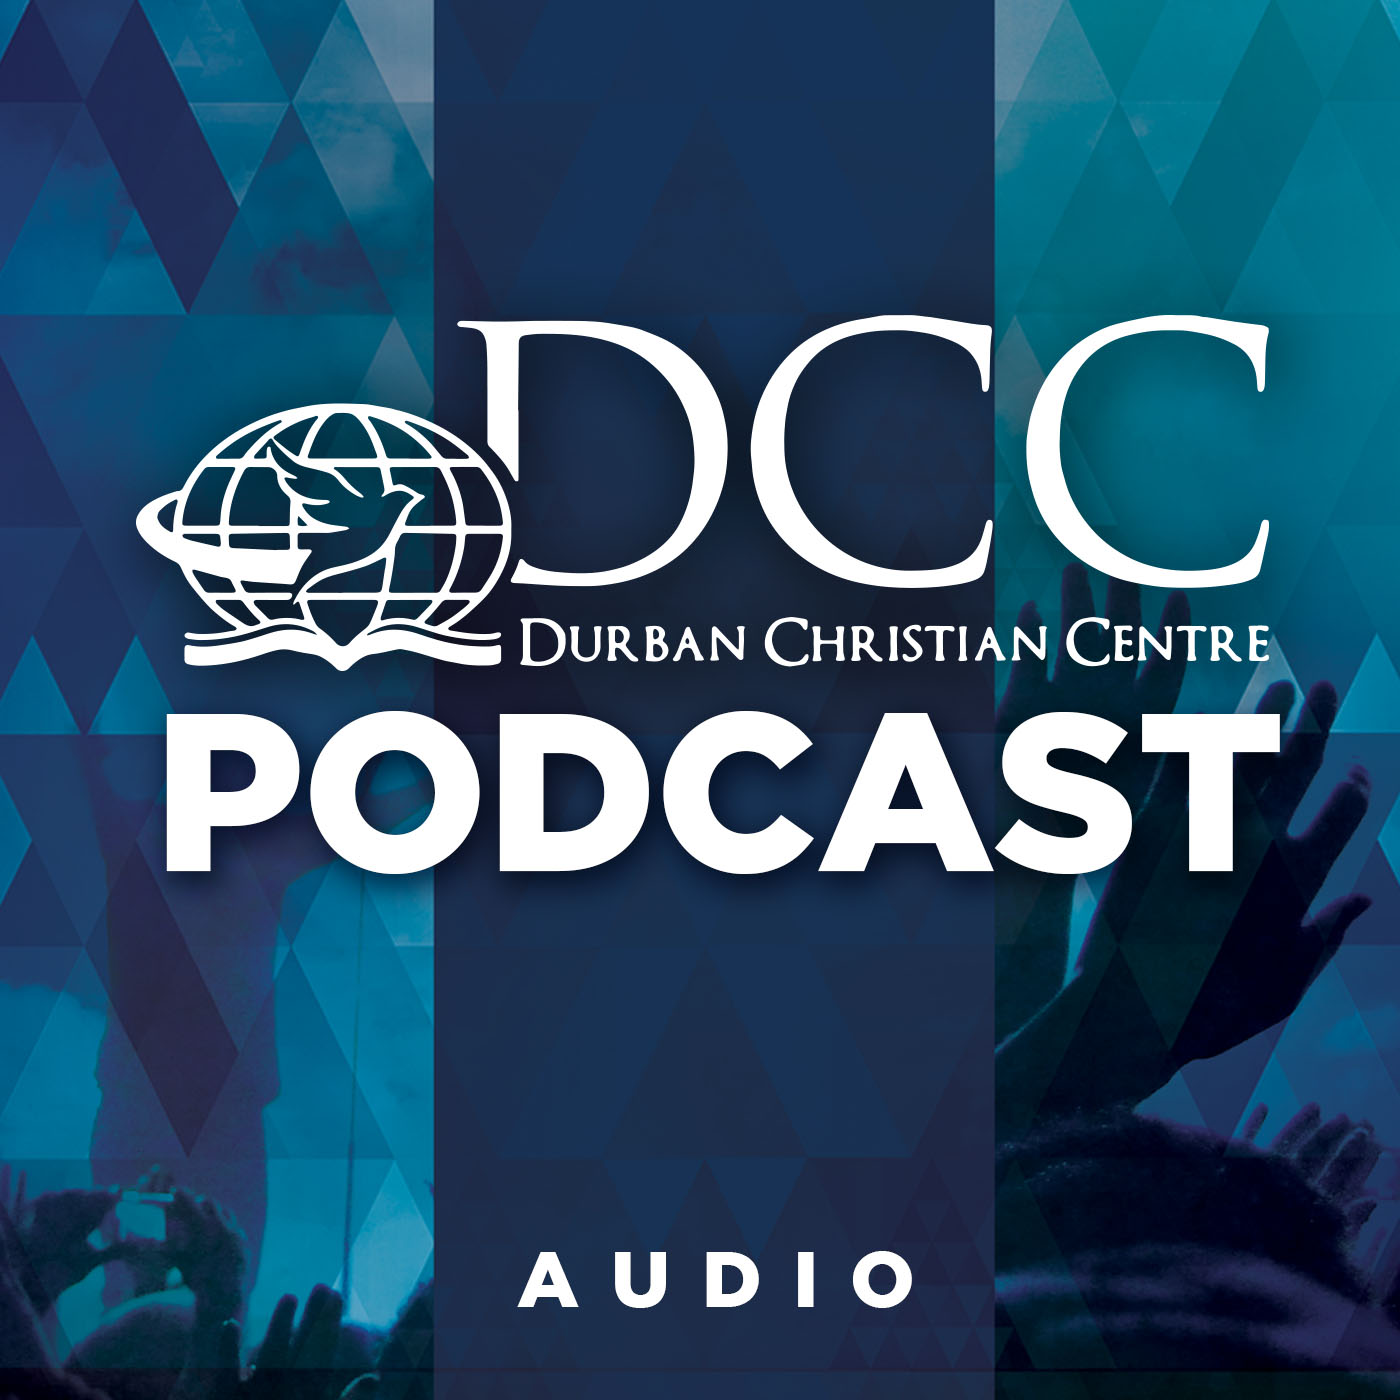 Sermon Podcasts - Durban Christian Centre Jesus Dome